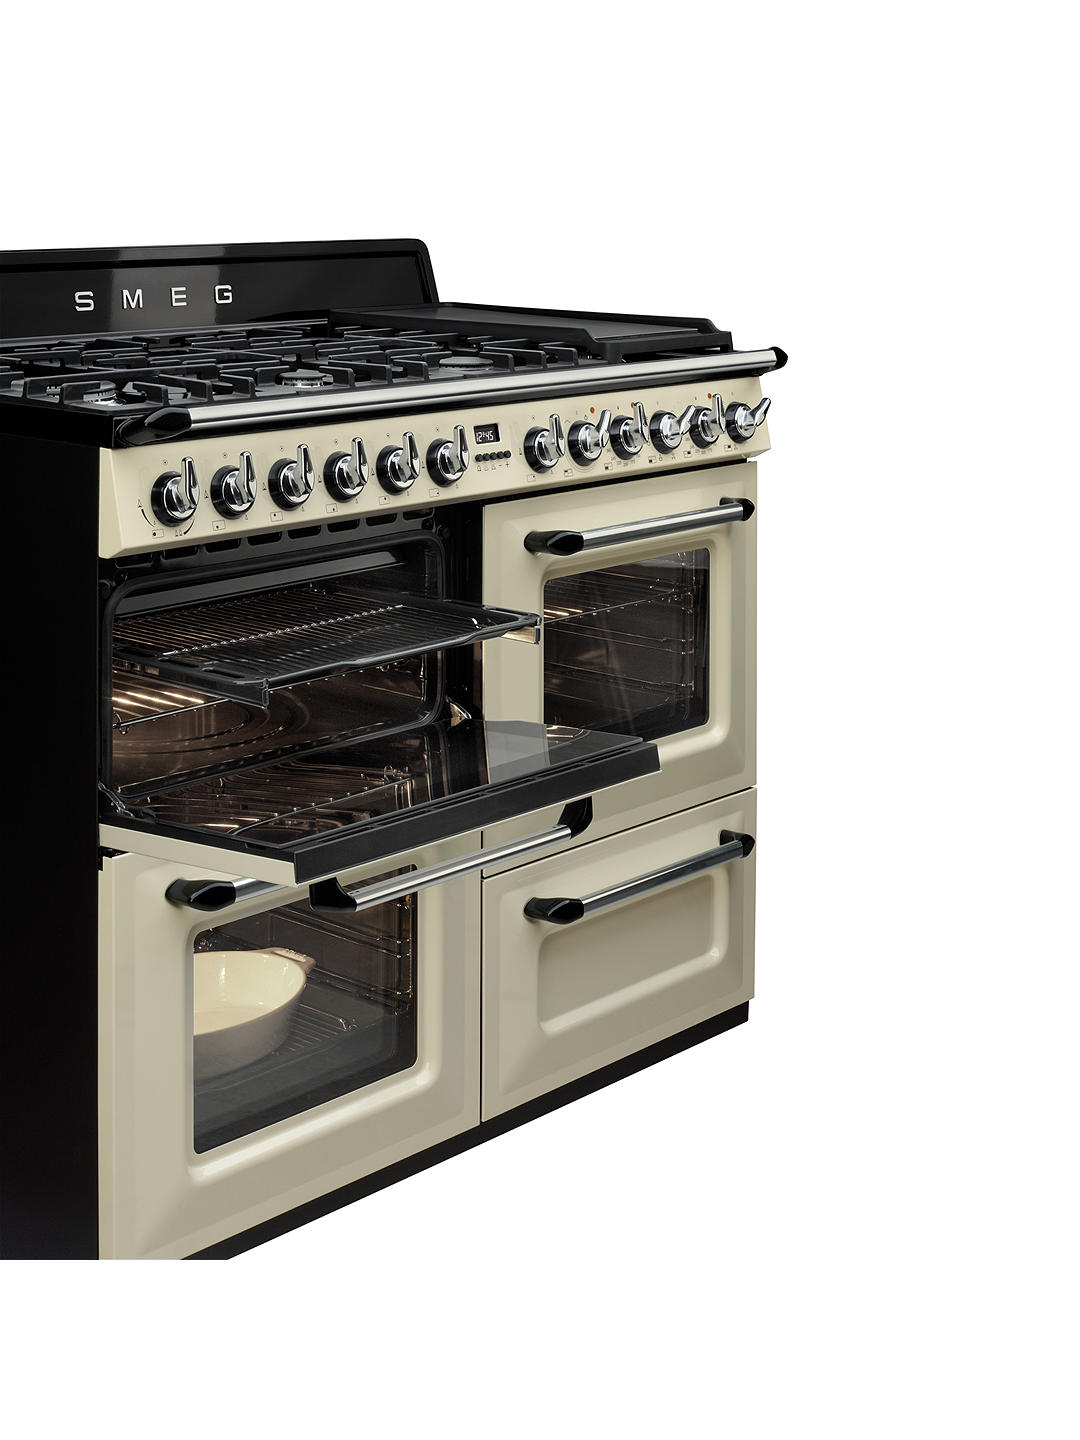 Buy Smeg TR4110P1 Dual Fuel Range Cooker, Cream Online at johnlewis.com